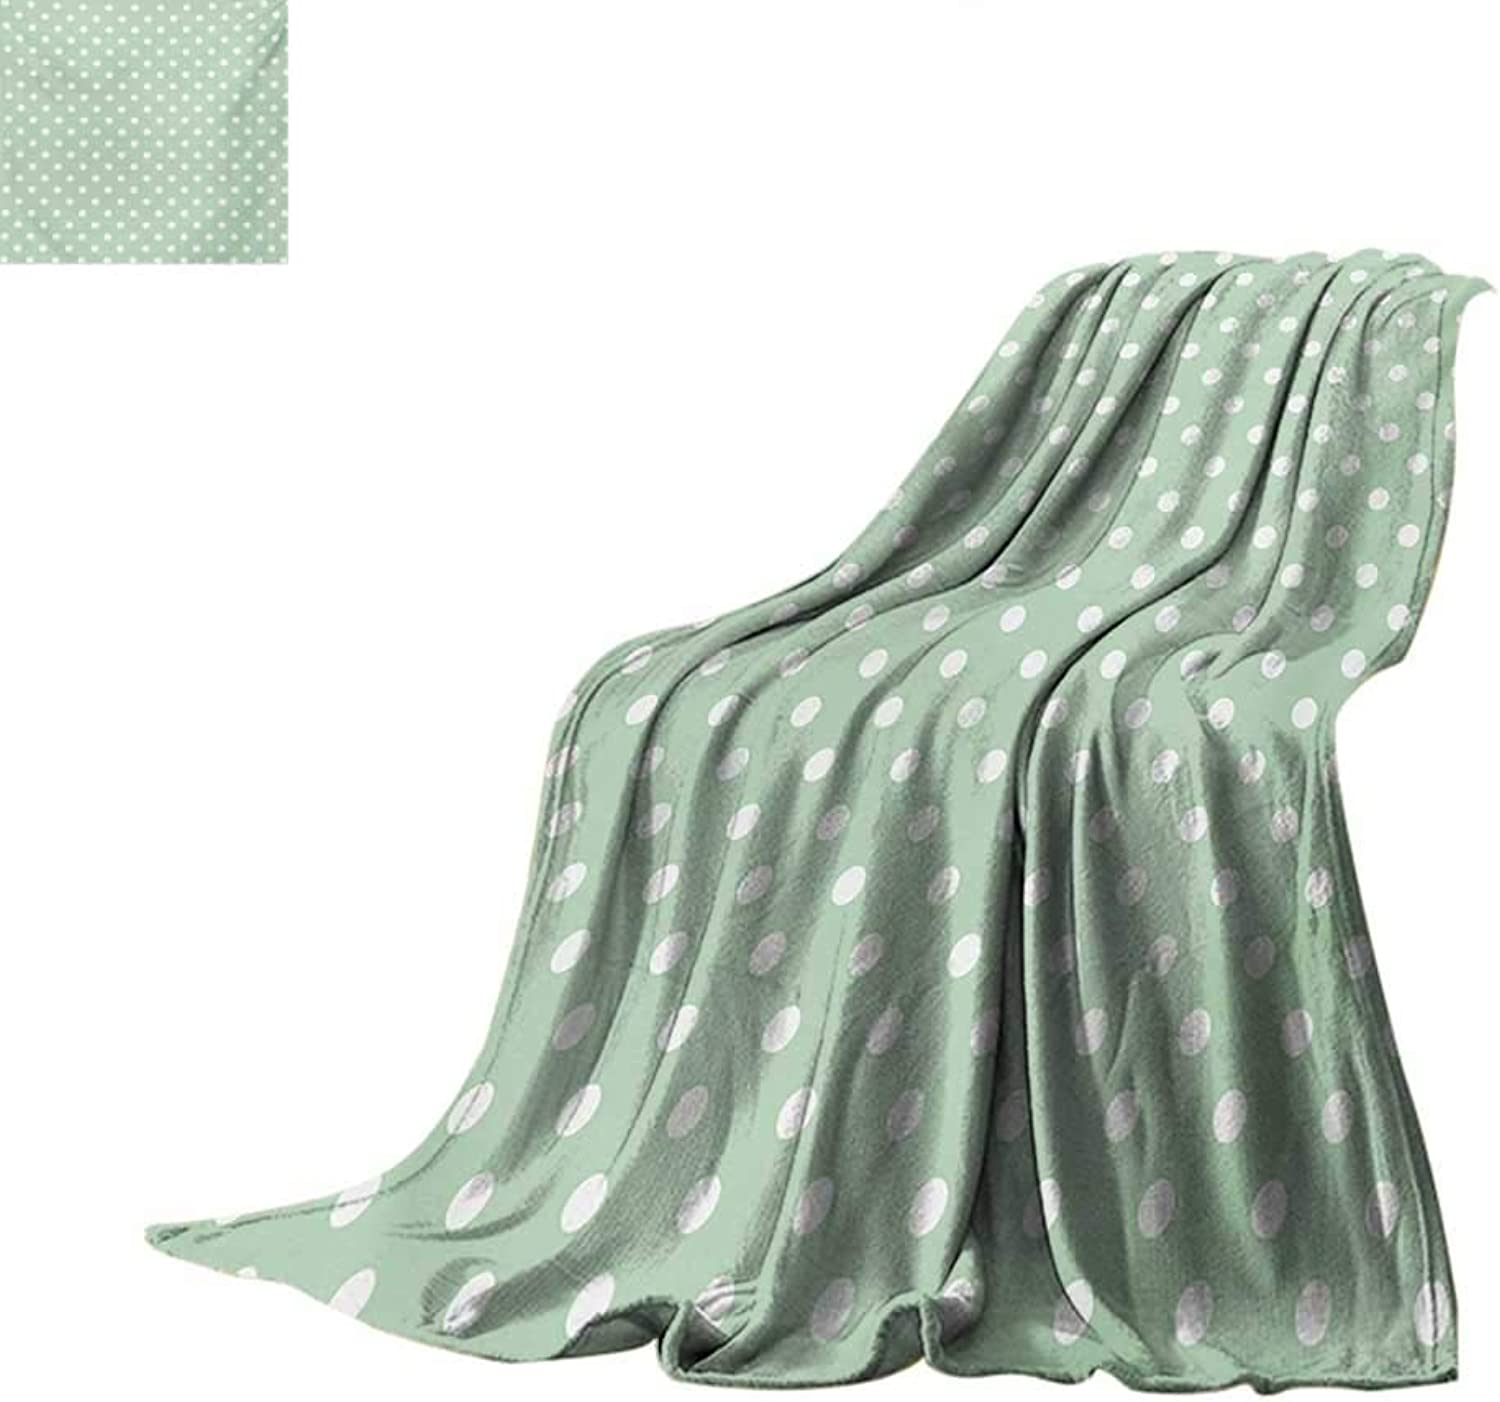 MintFlannel Single Student blanketClassical Old Fashioned Polka Dots Pattern on Pale Green Fresh BackgroundStudent Blanket 50 x30  Mint Green and White